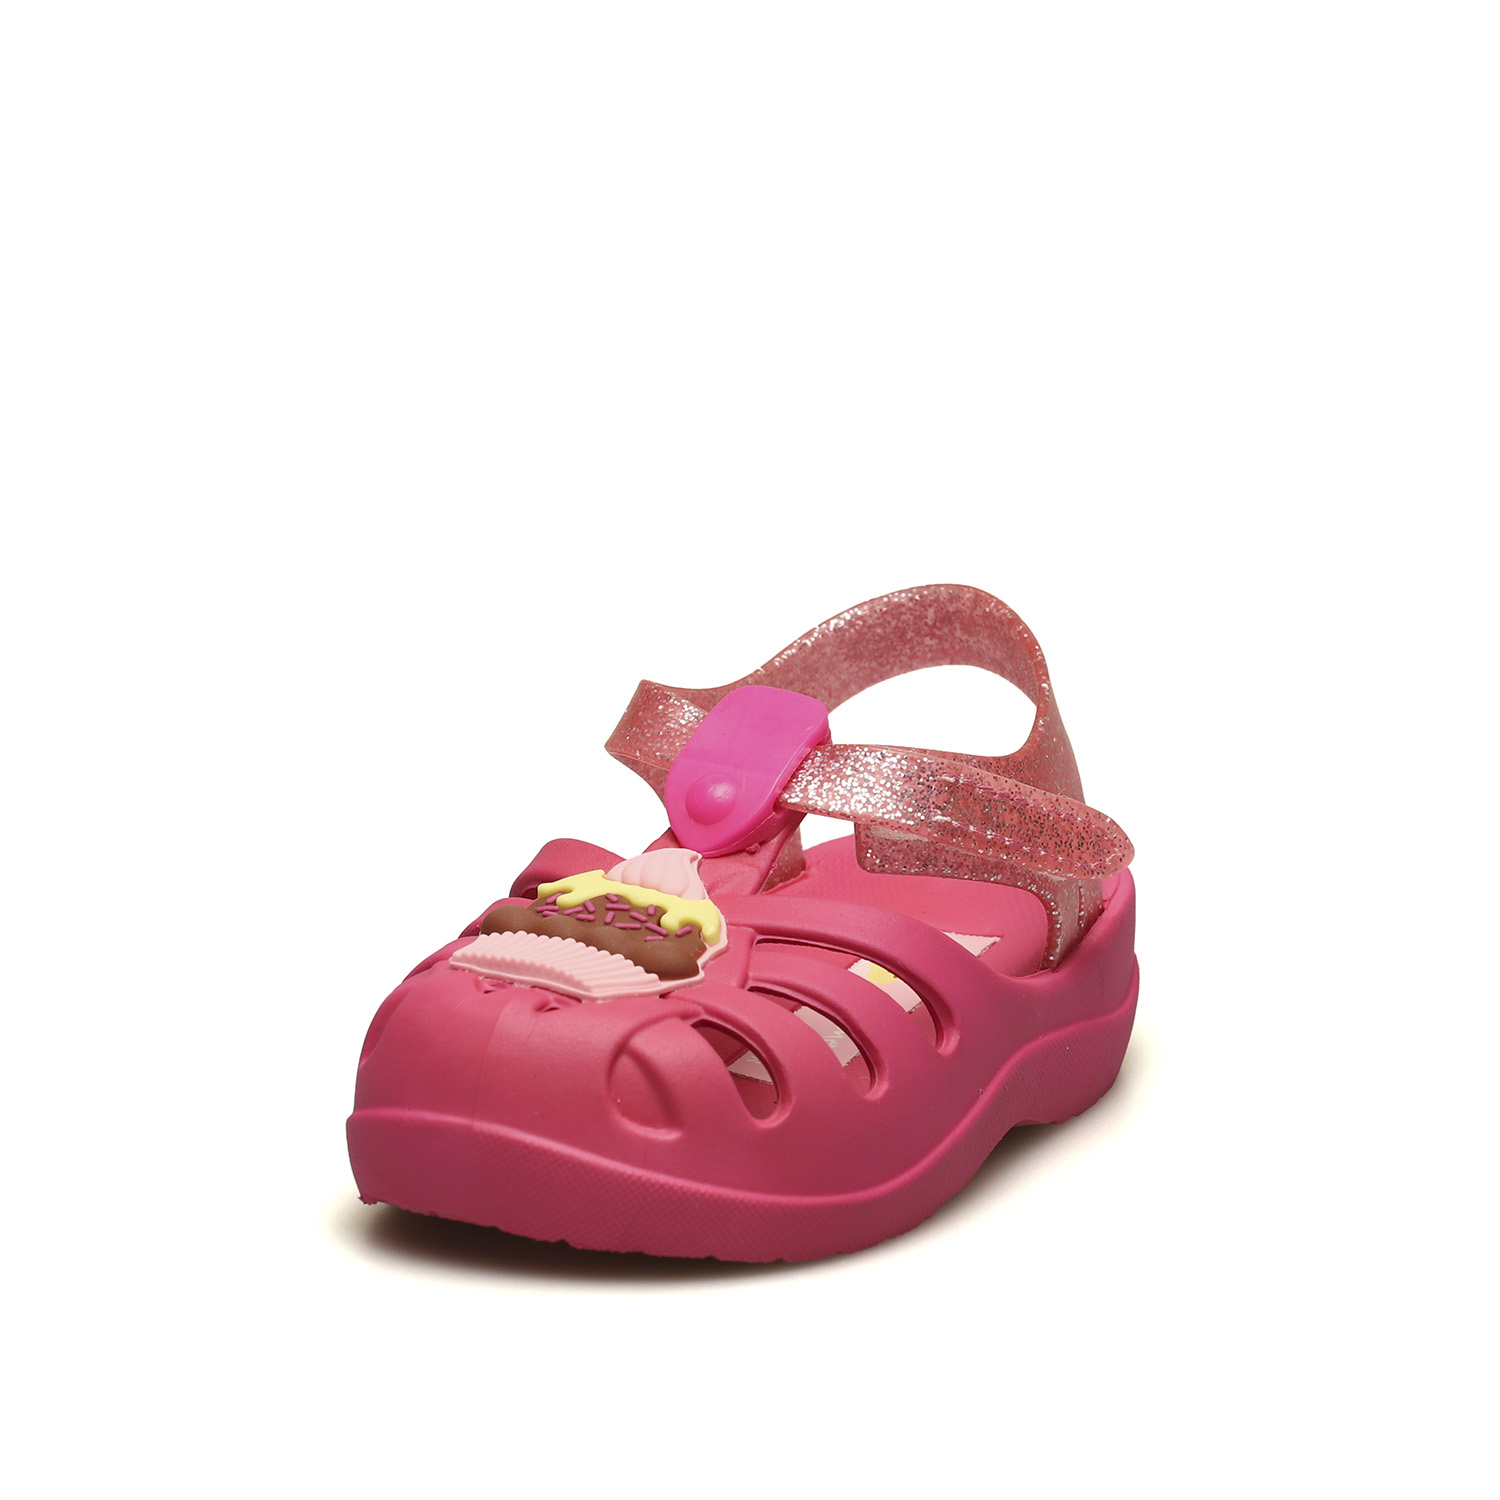 IPANEMA SANDALS FOR KIDS CAKE